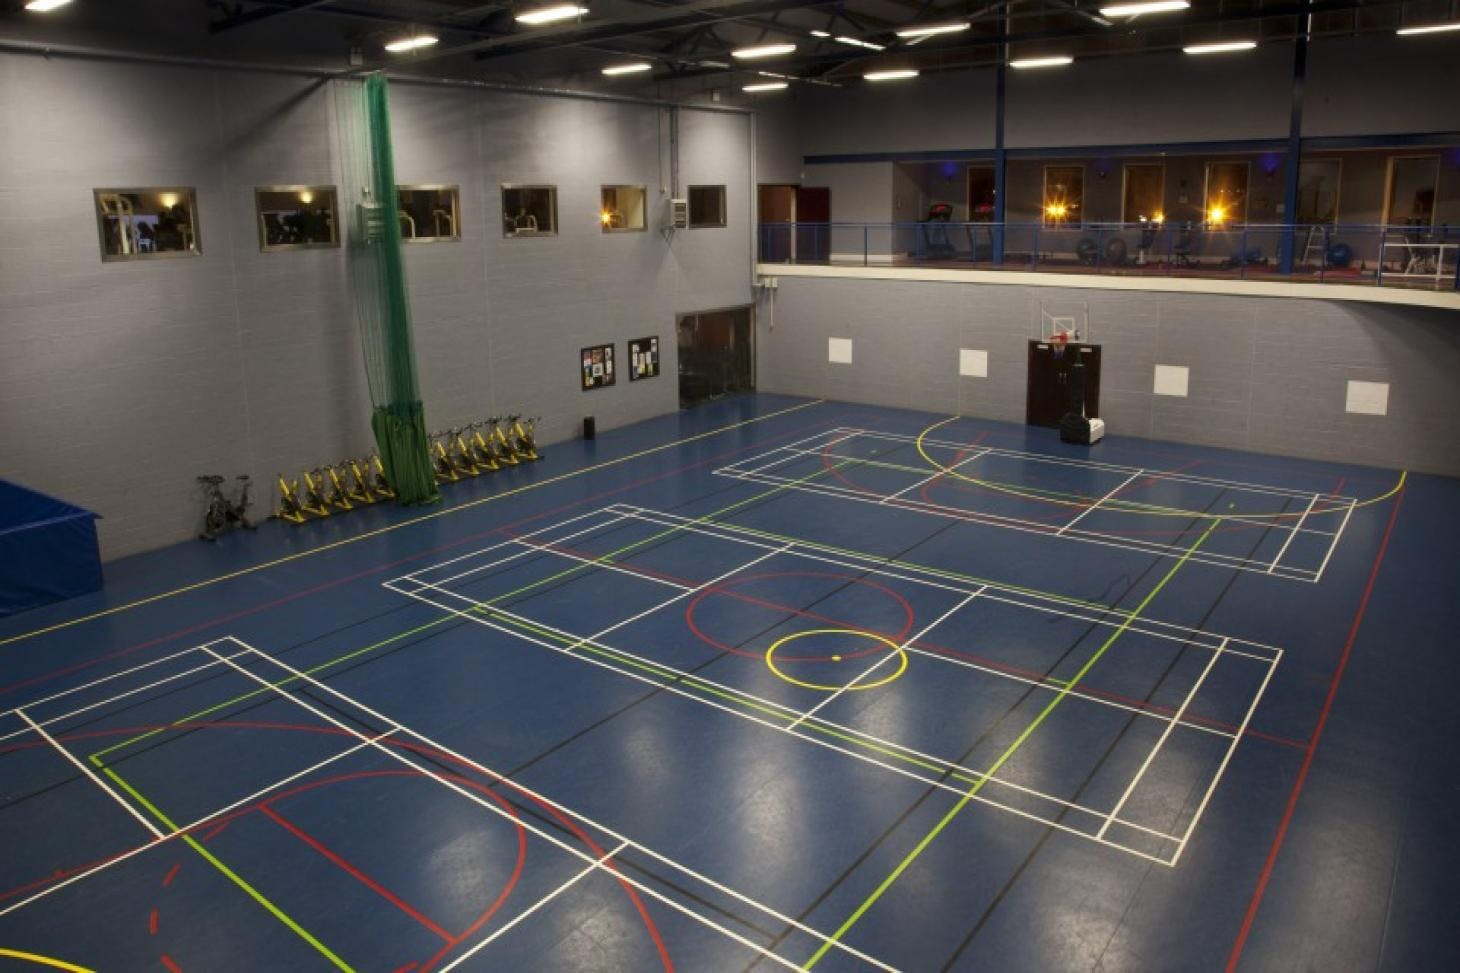 Westmanstown Sports & Conference Centre Indoor basketball court